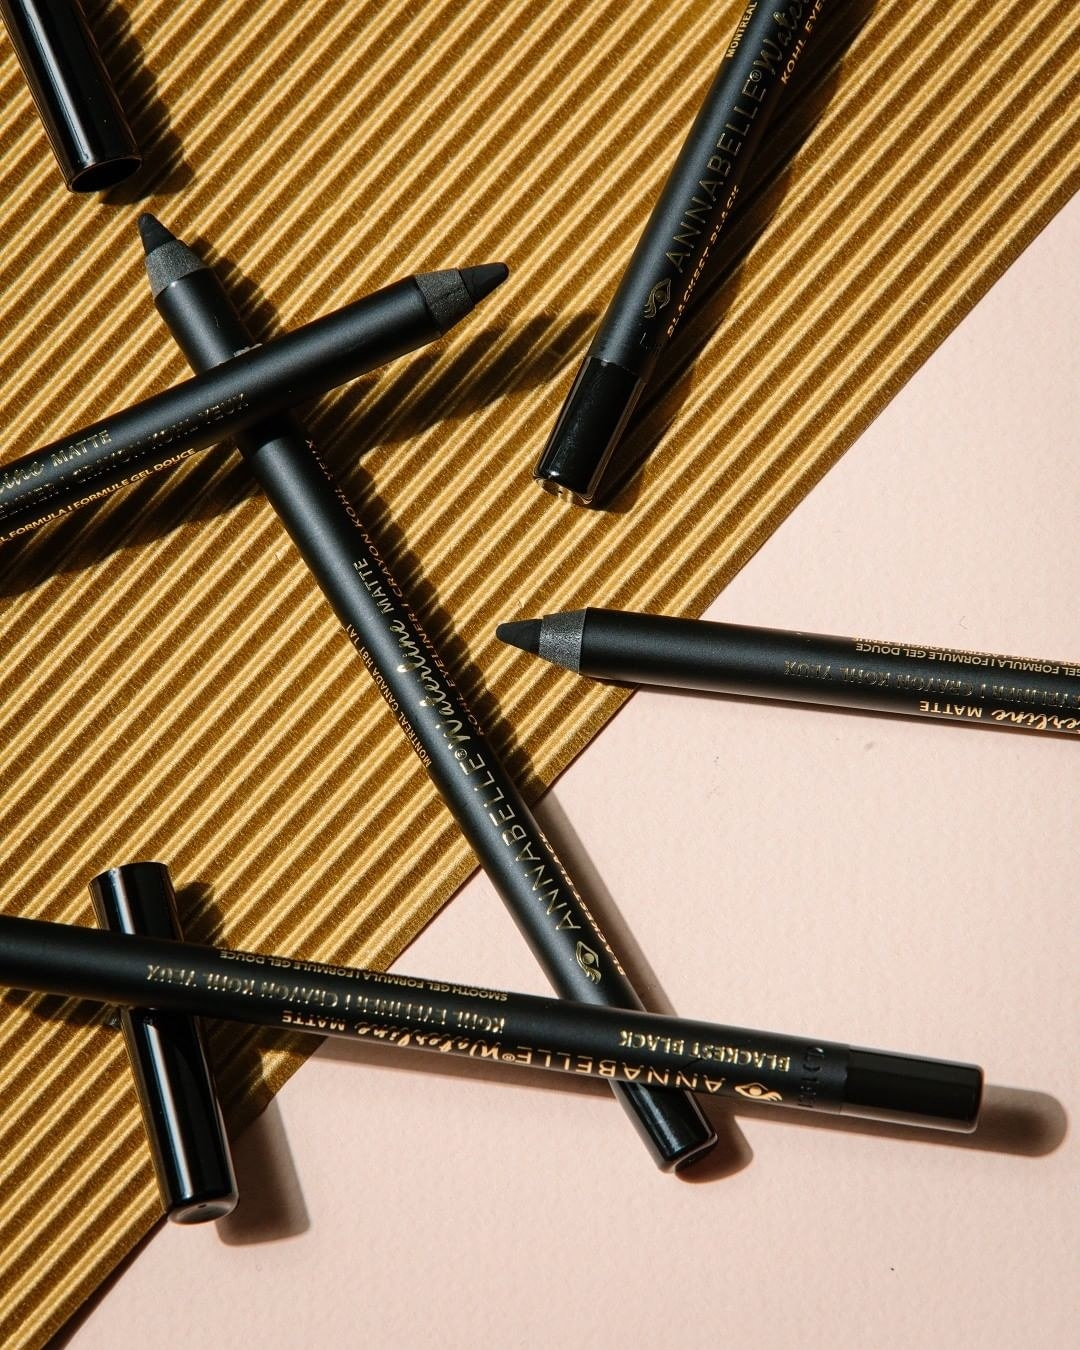 A small pile of eyeliner pencils